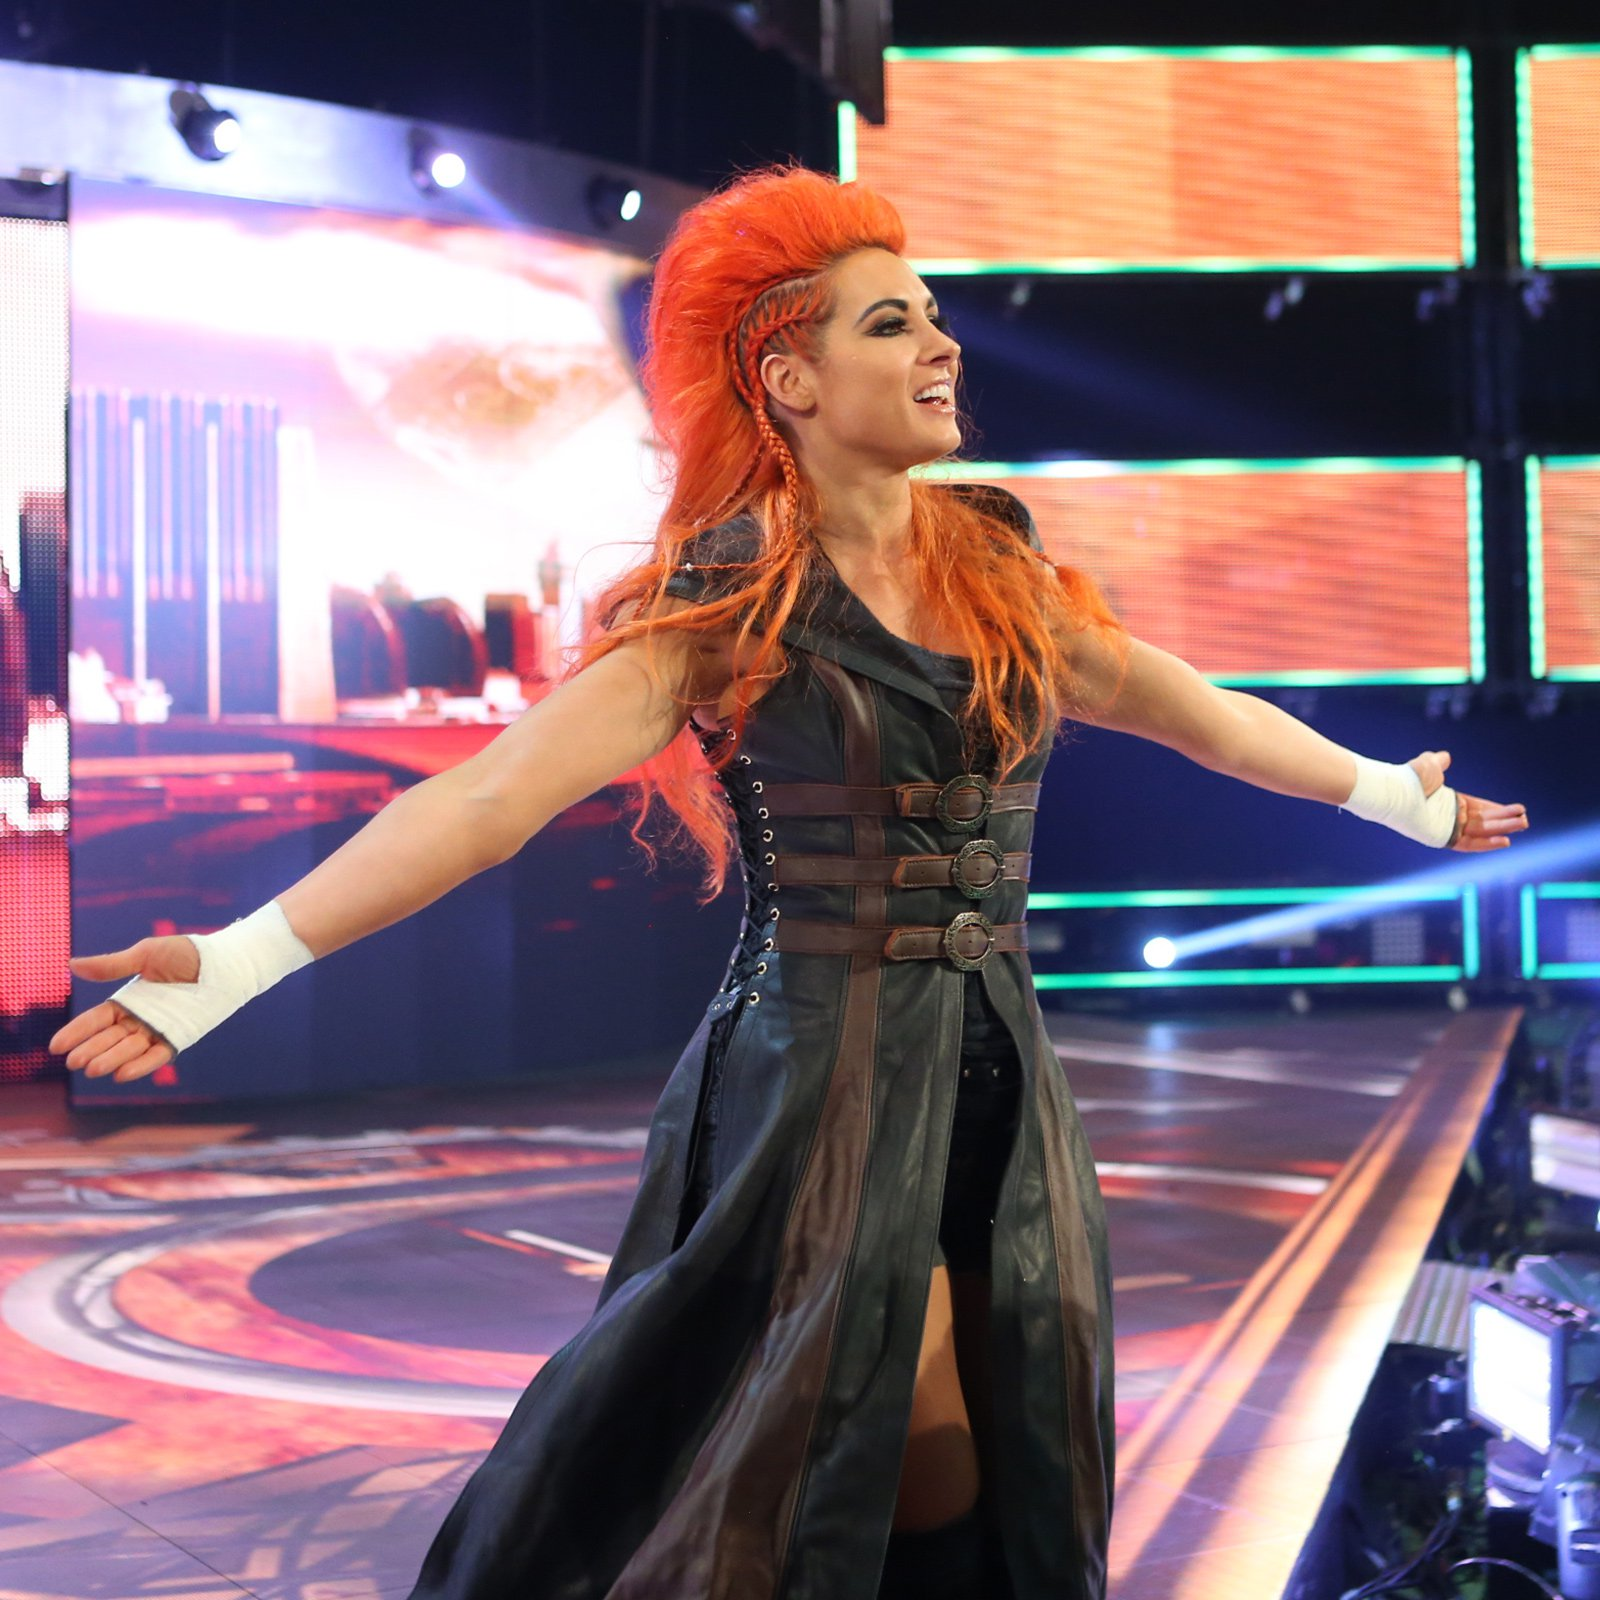 Becky Lynch receives a warm welcome from the WWE Universe in Chicago.